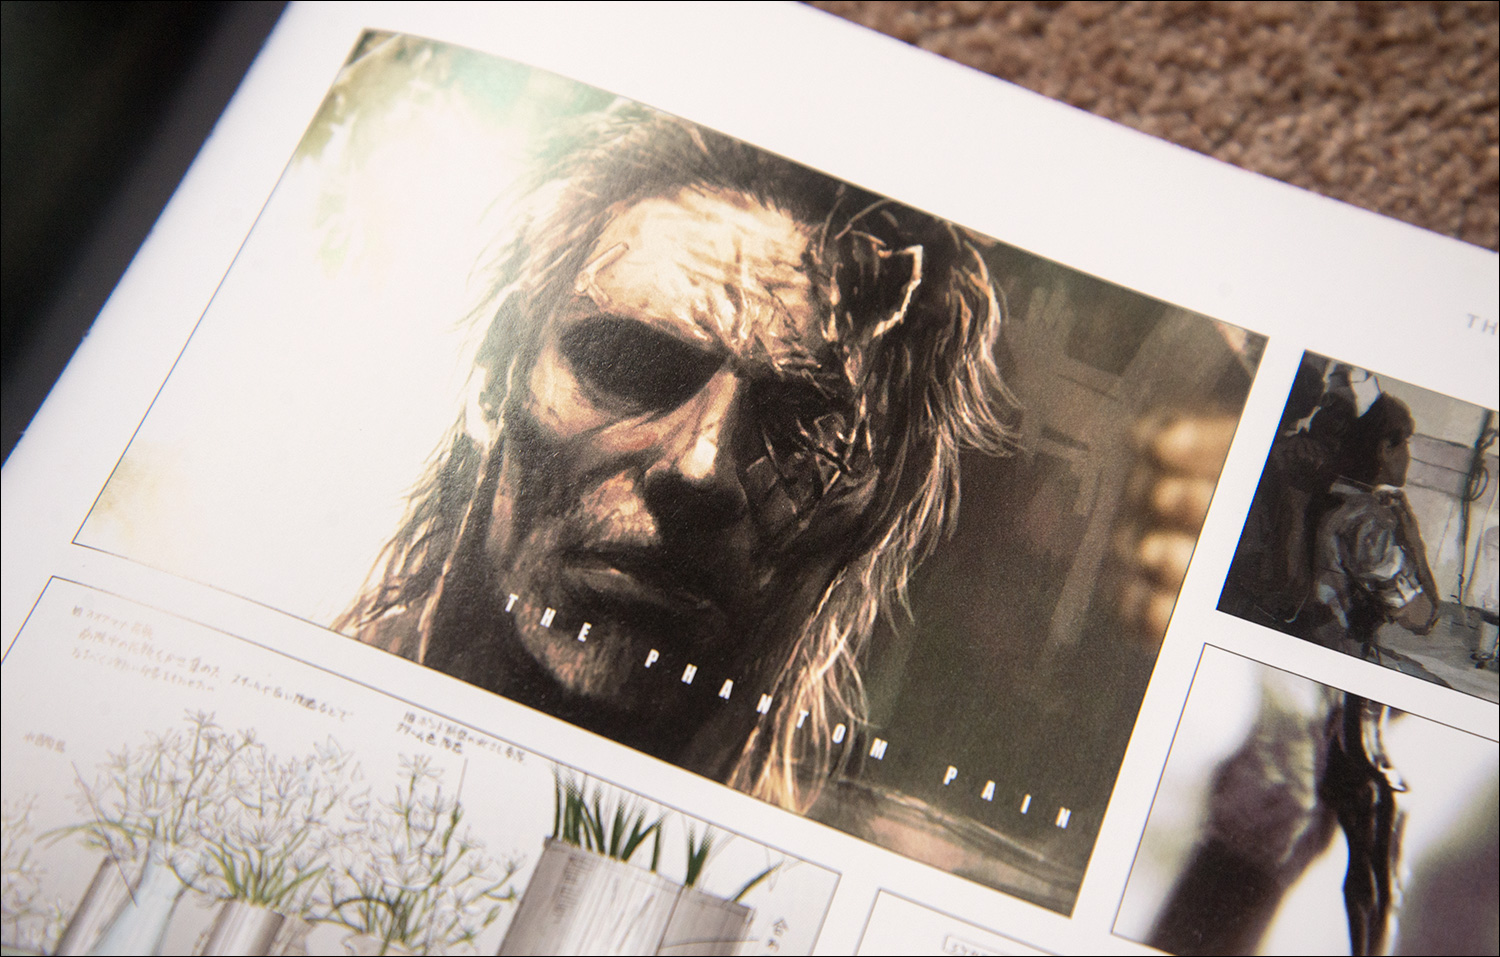 the-art-of-metal-gear-solid-v-limited-edition-title-screen-face